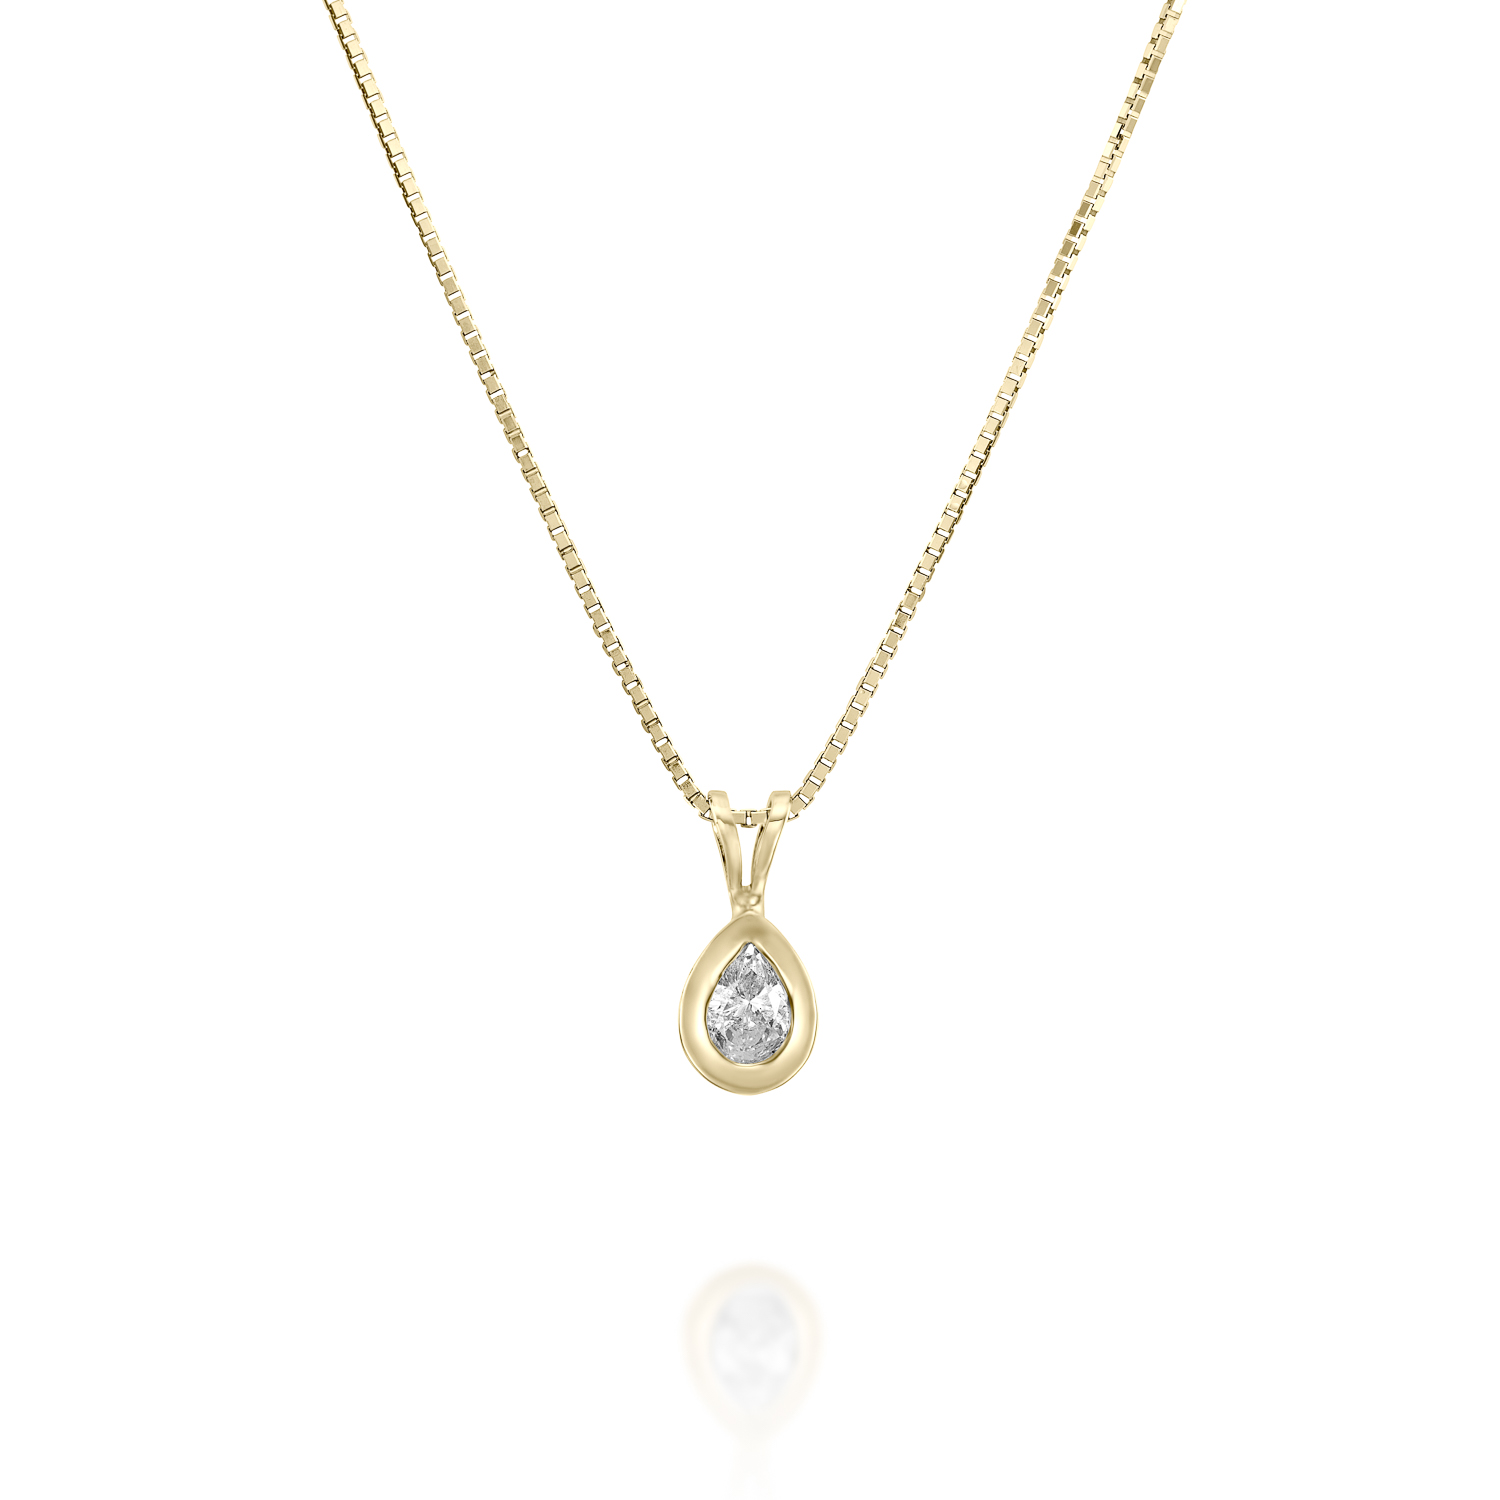 halo pendants gold shaped tg and white gemstone pear diamond necklaces shape tanzanite pid pendant